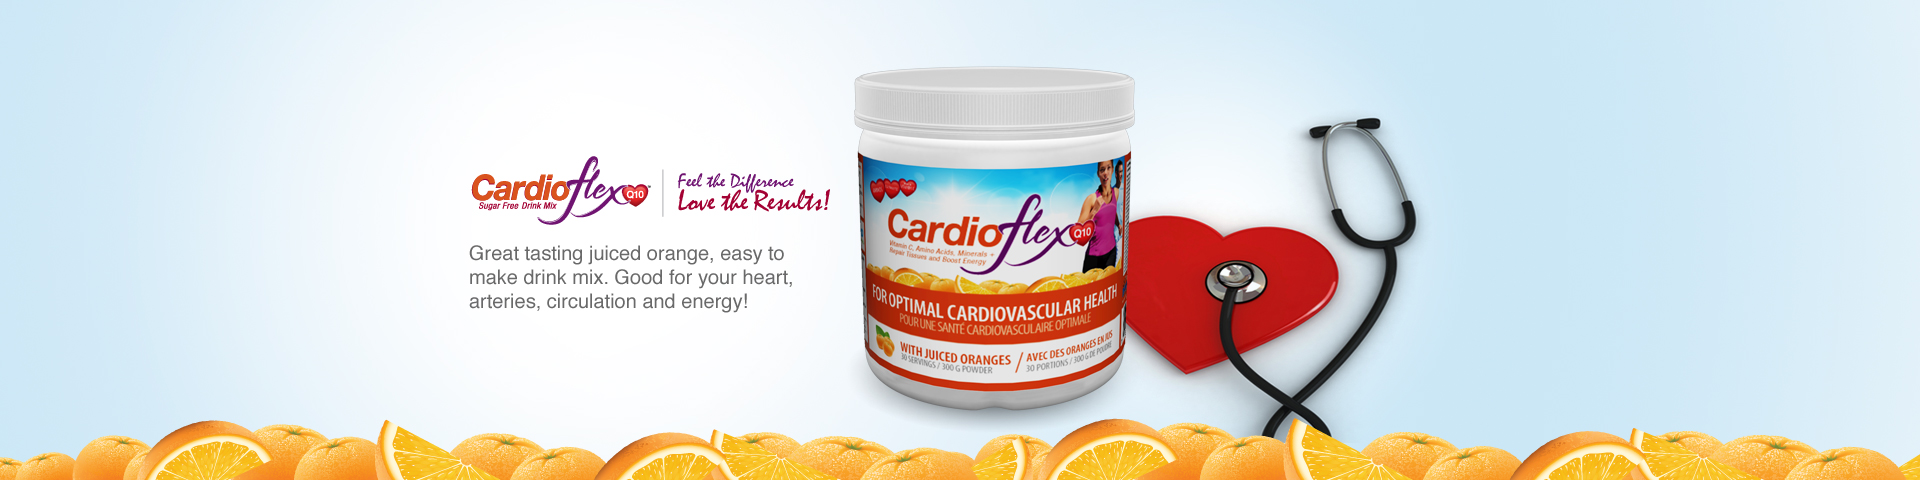 Free Sample Of Cardio Flex Q10 From Innotech By Mail